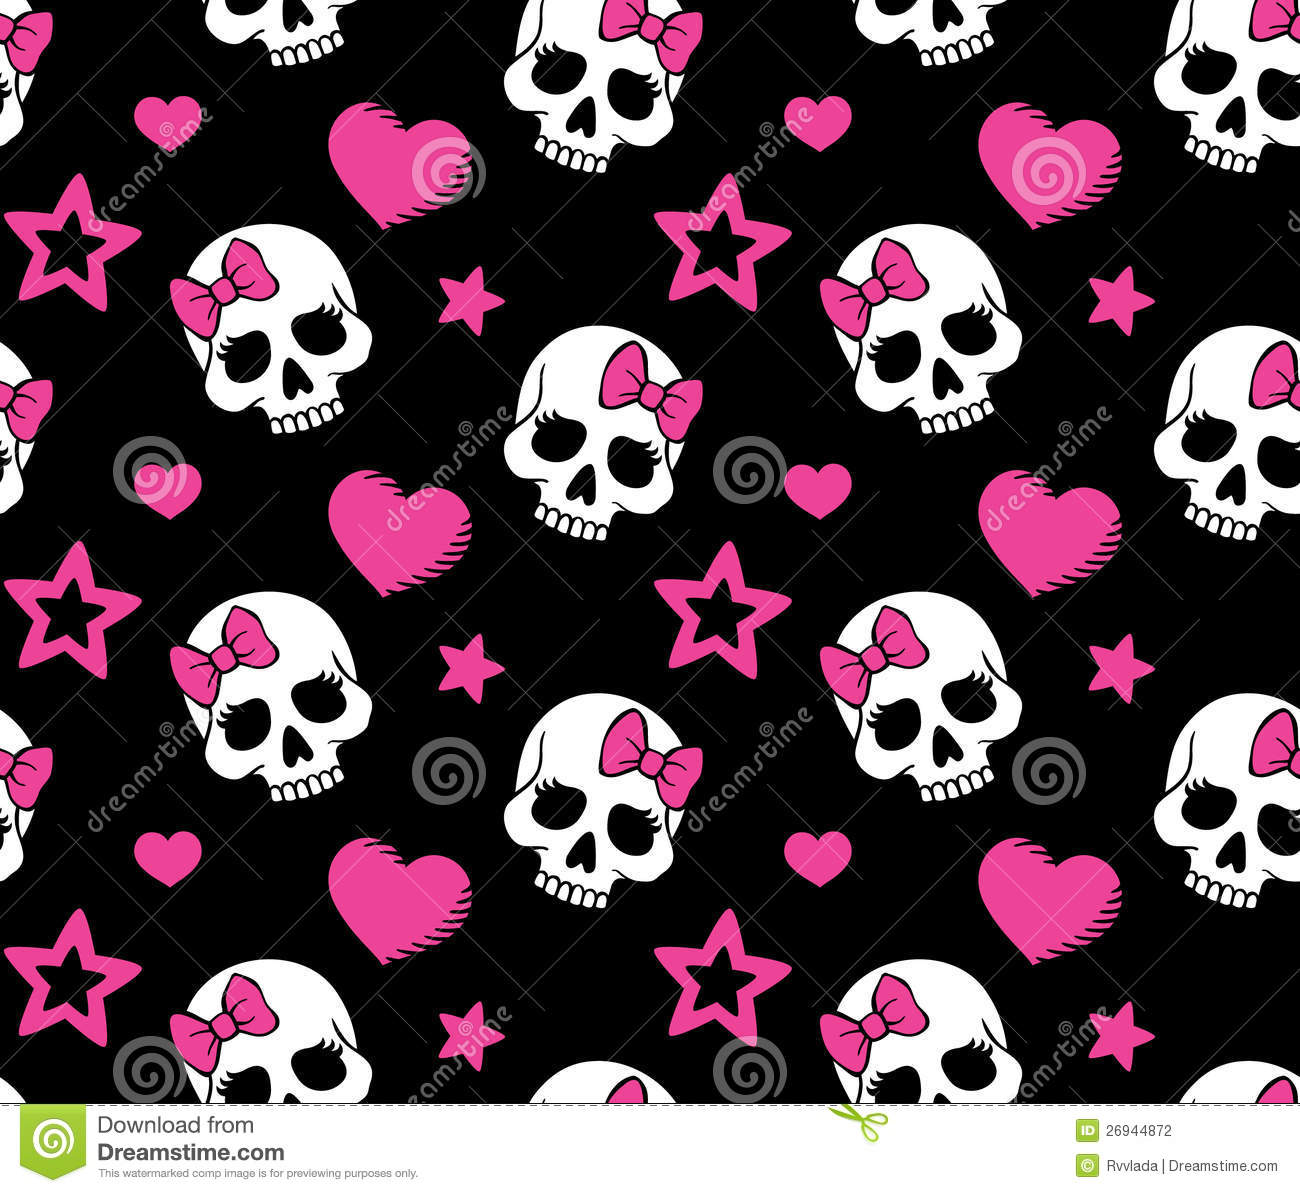 Cute Girly Skull Wallpapers Seamless With Hearts And Skulls Stock Photography Image